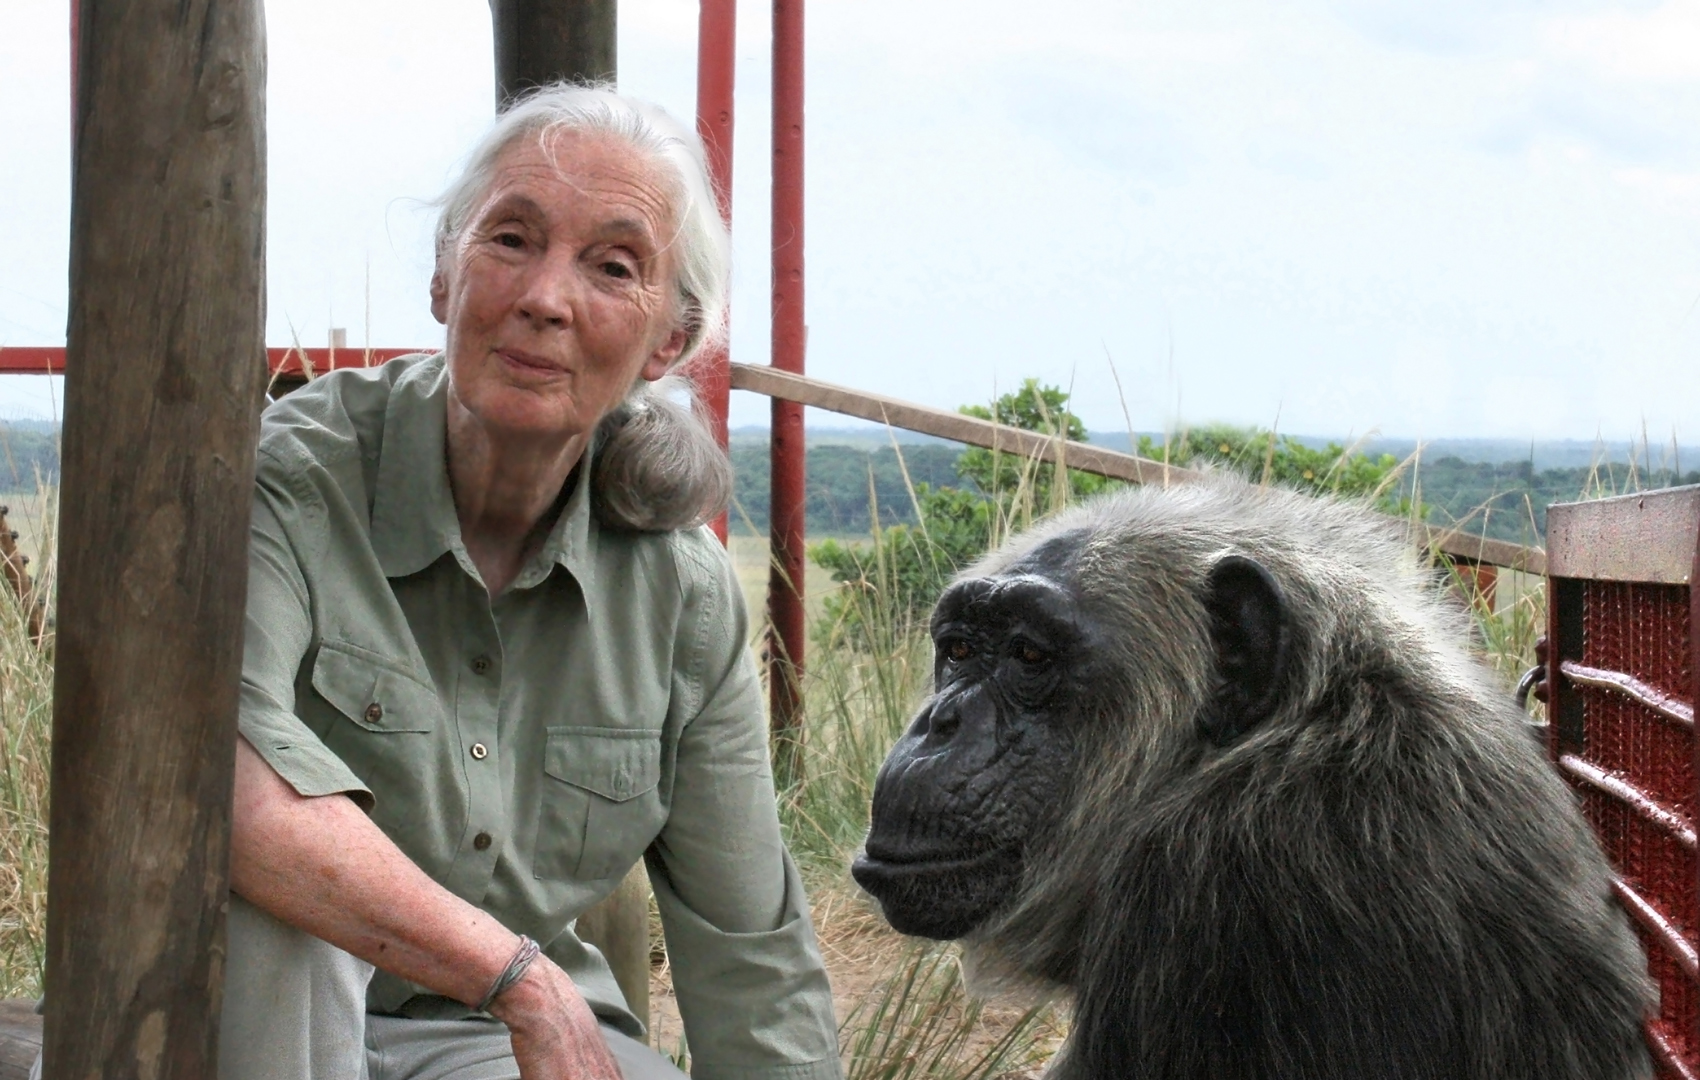 Jane Goodall with Chimpanzee